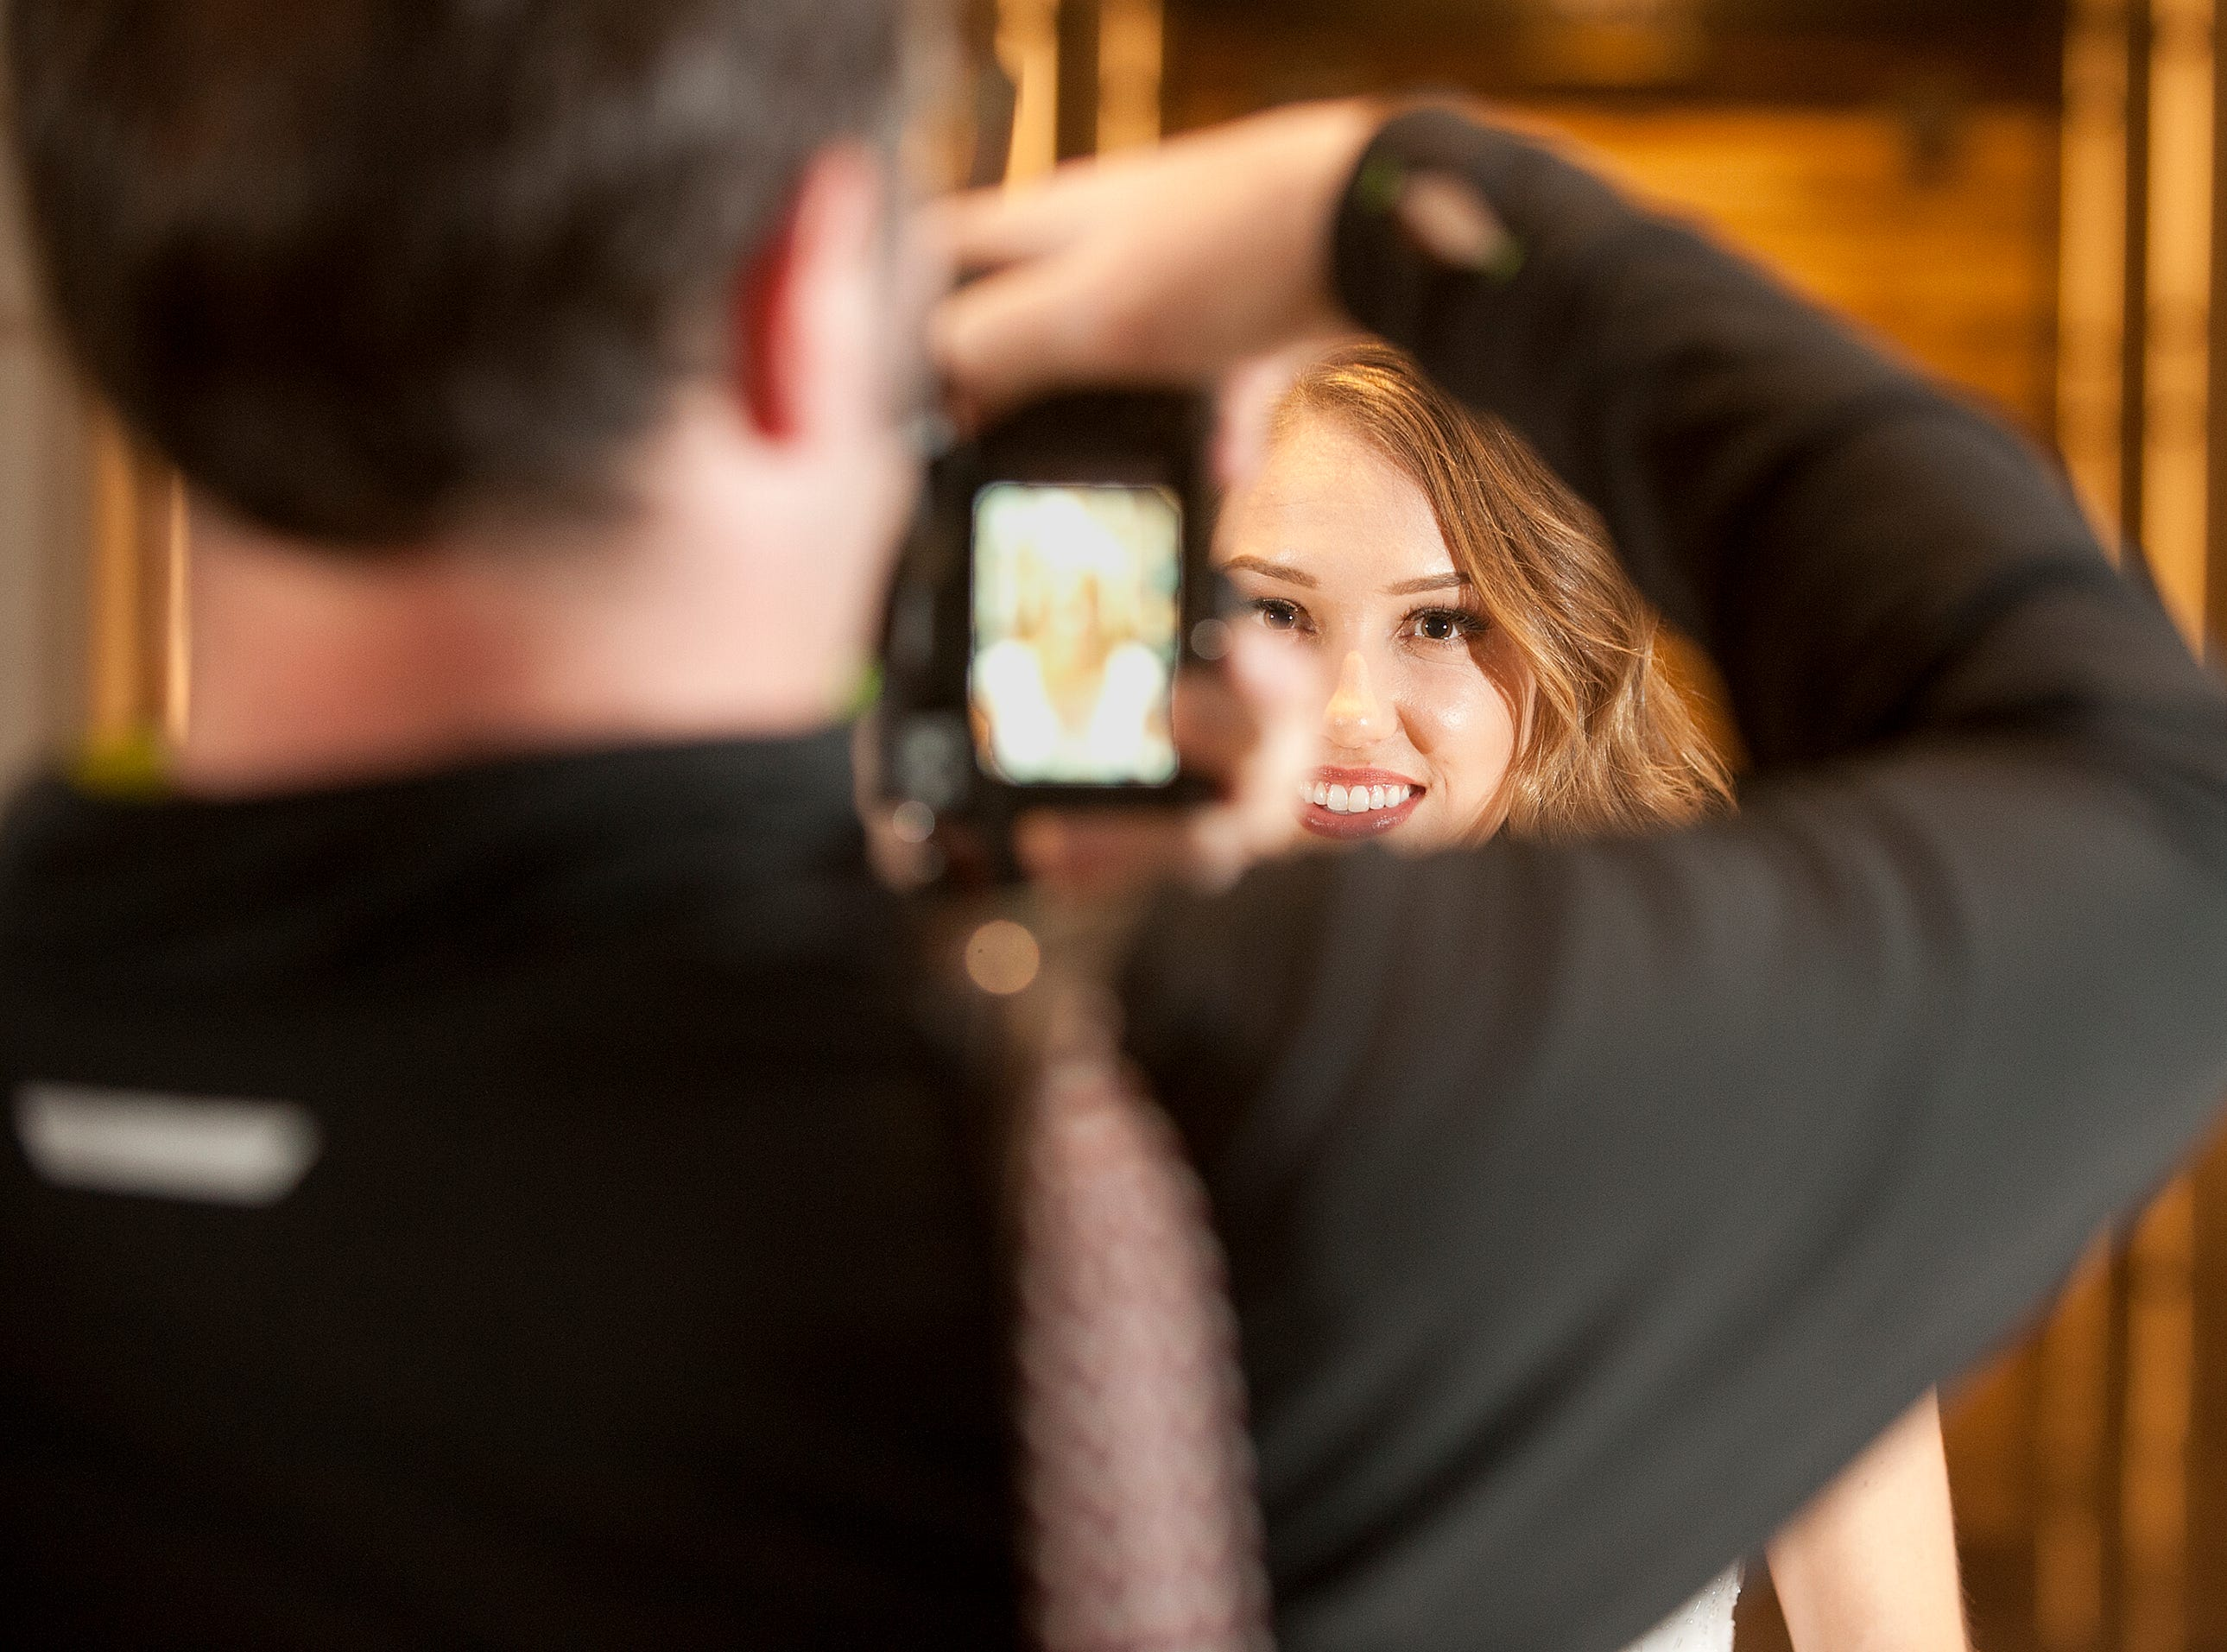 Kentucky Derby Festival Princess Elizabeth Seewer, 23, of the Springhurst neighborhood in Louisville, is in Bellarmine University's graduate physical therapy doctoral program. She is posing for official photographer Stephen Cohen, left. 06 January 2019